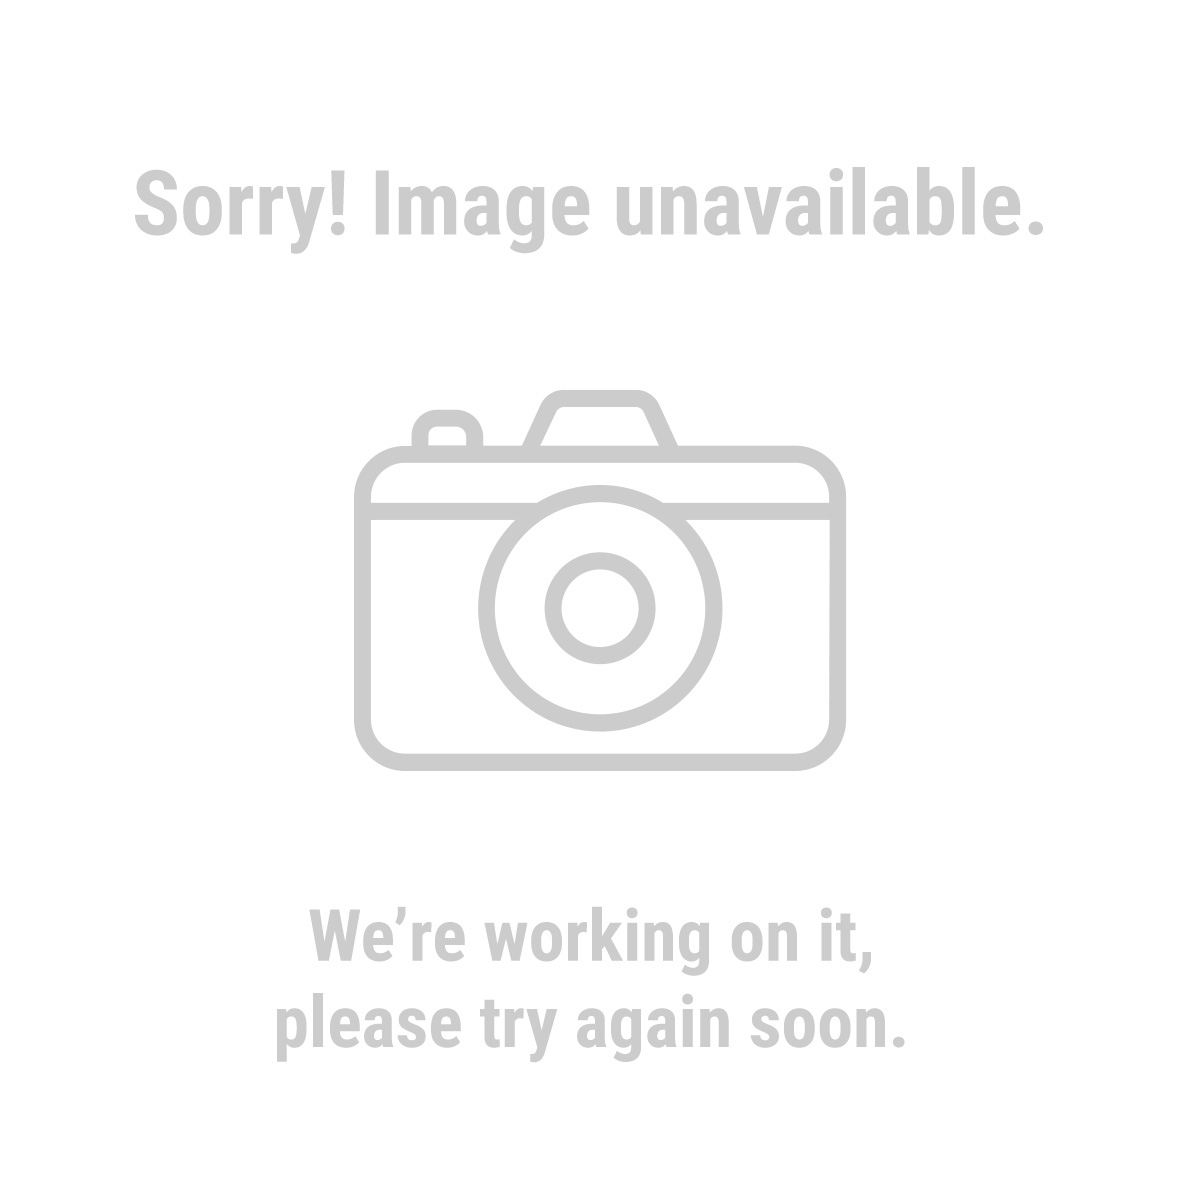 Storehouse 90243 24 Container Storage Box